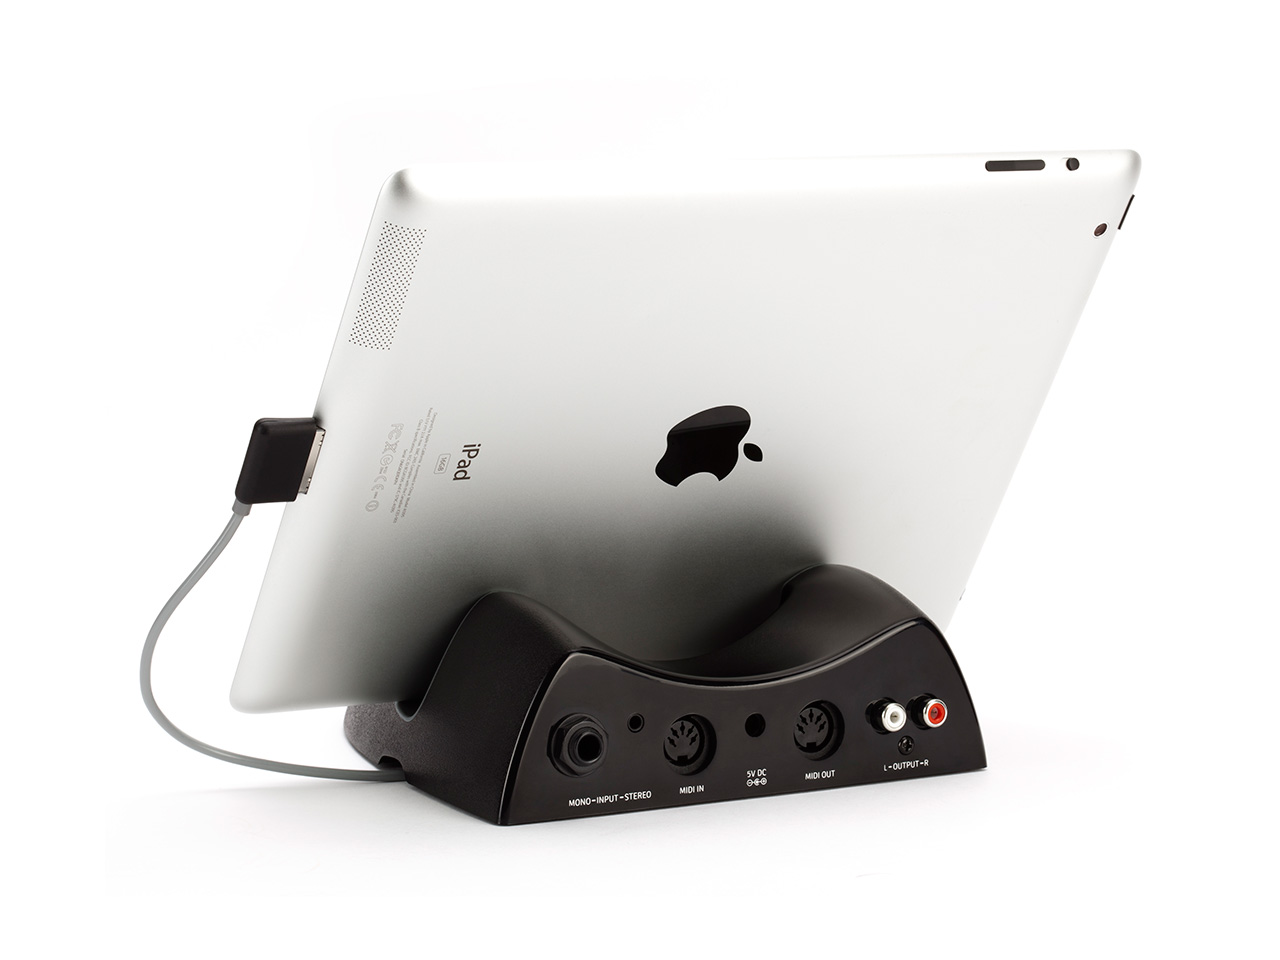 Studioconnect Audio And Midi Interface For Ipad 30 Pin Connector image